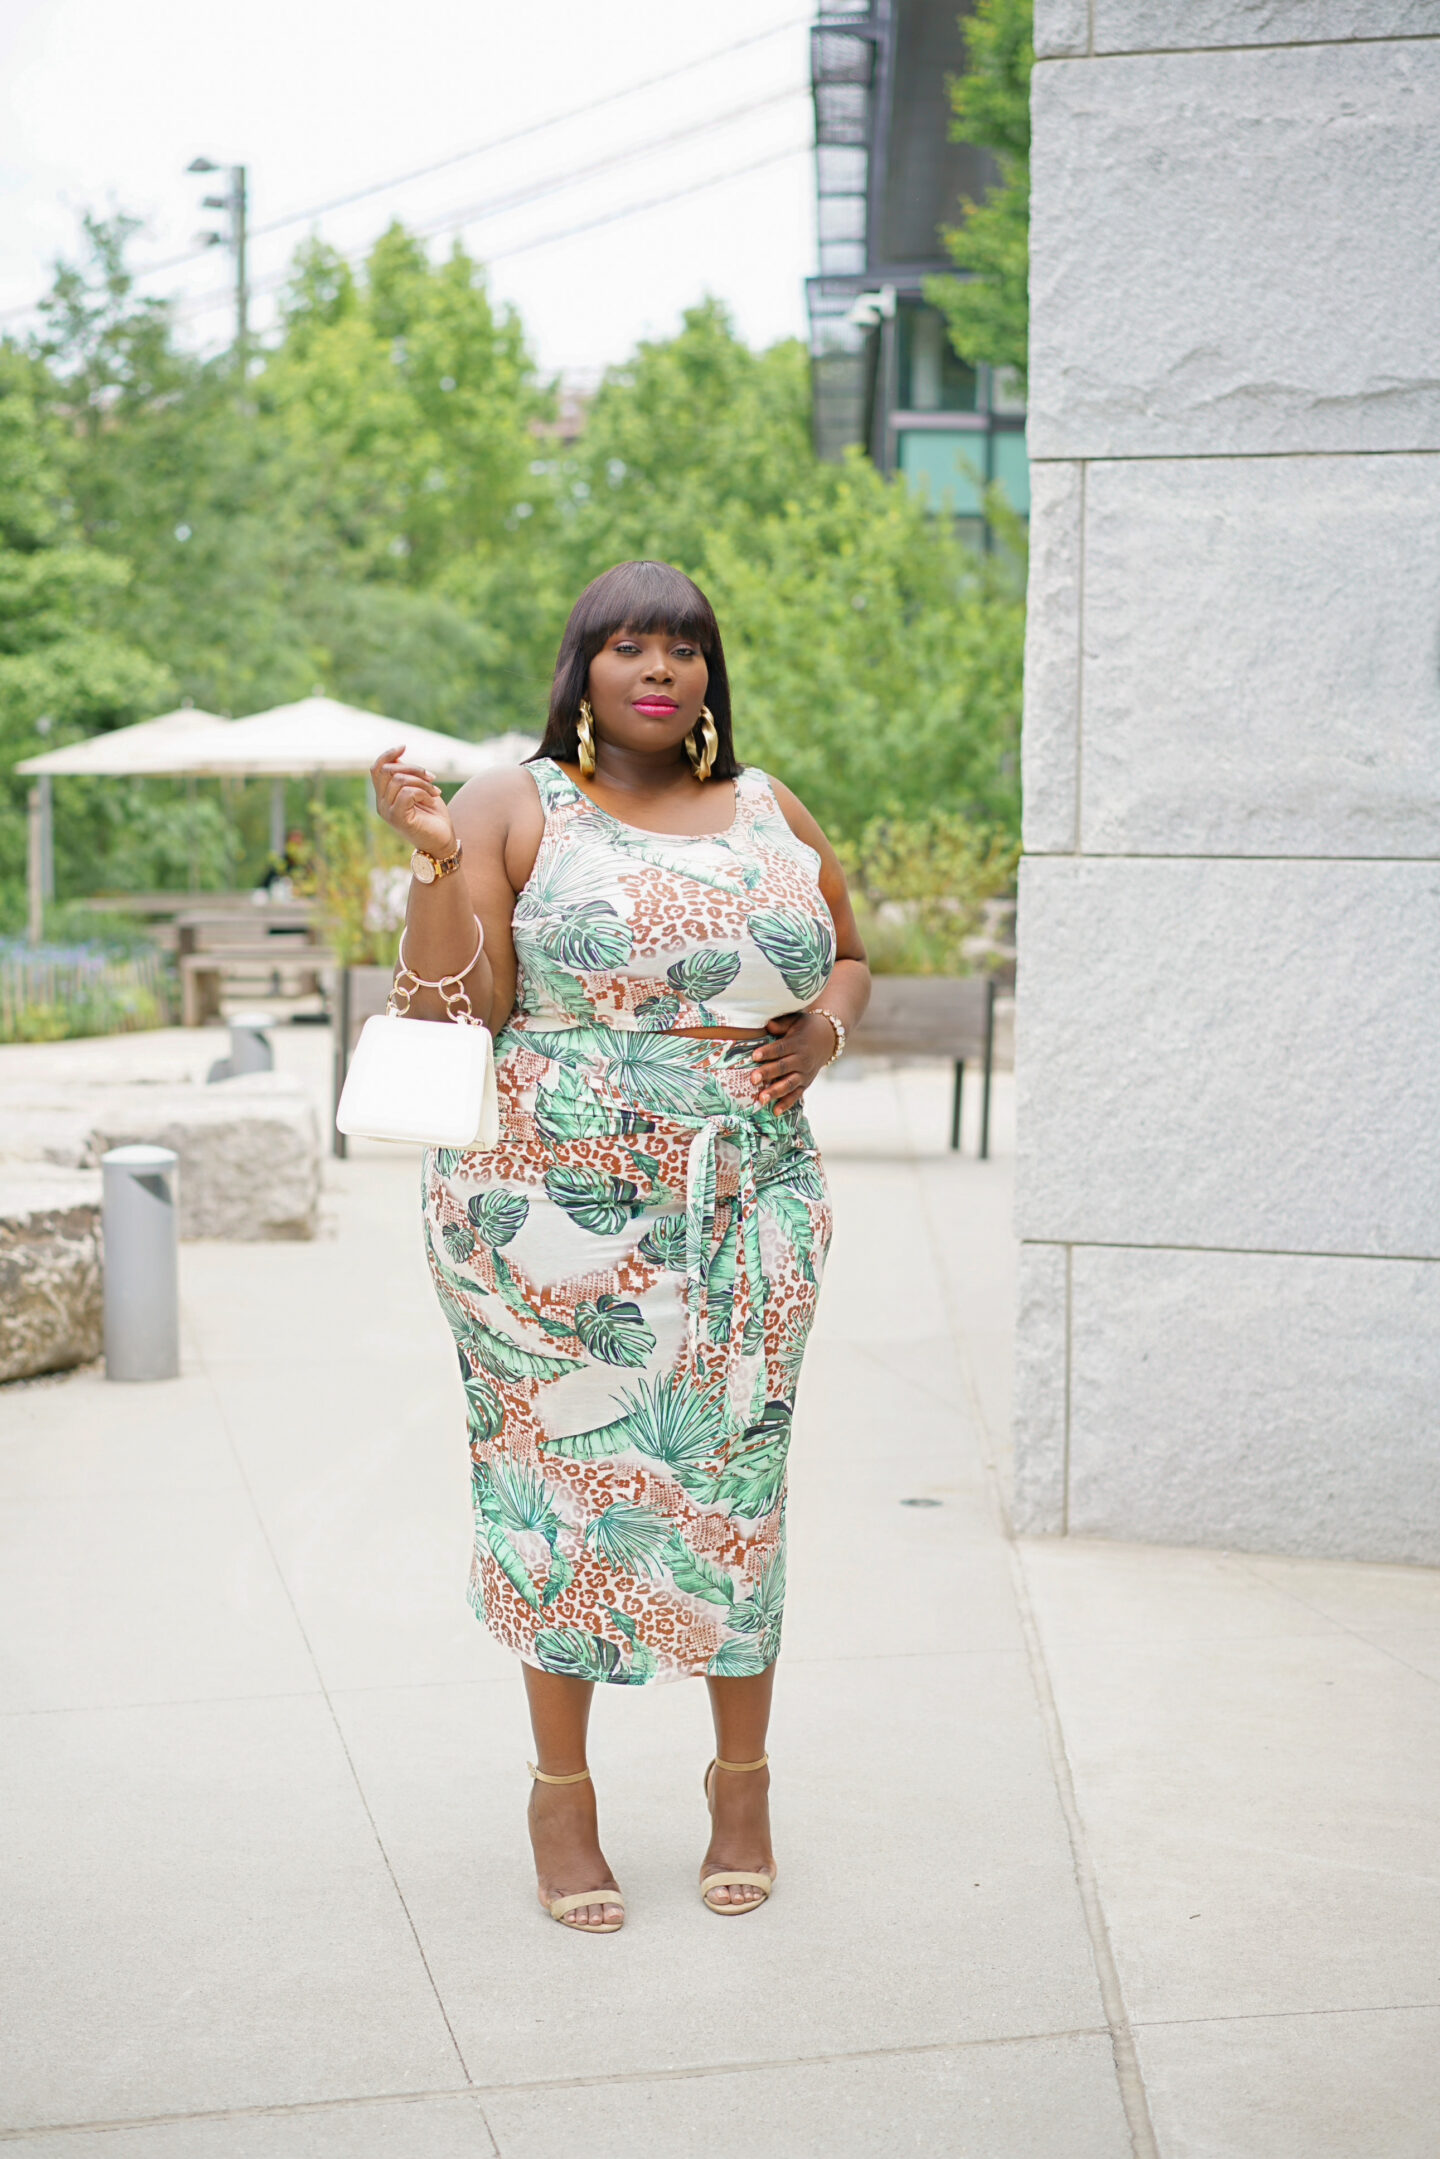 This tropical Print skirt set is one of many great plus size summer outfits